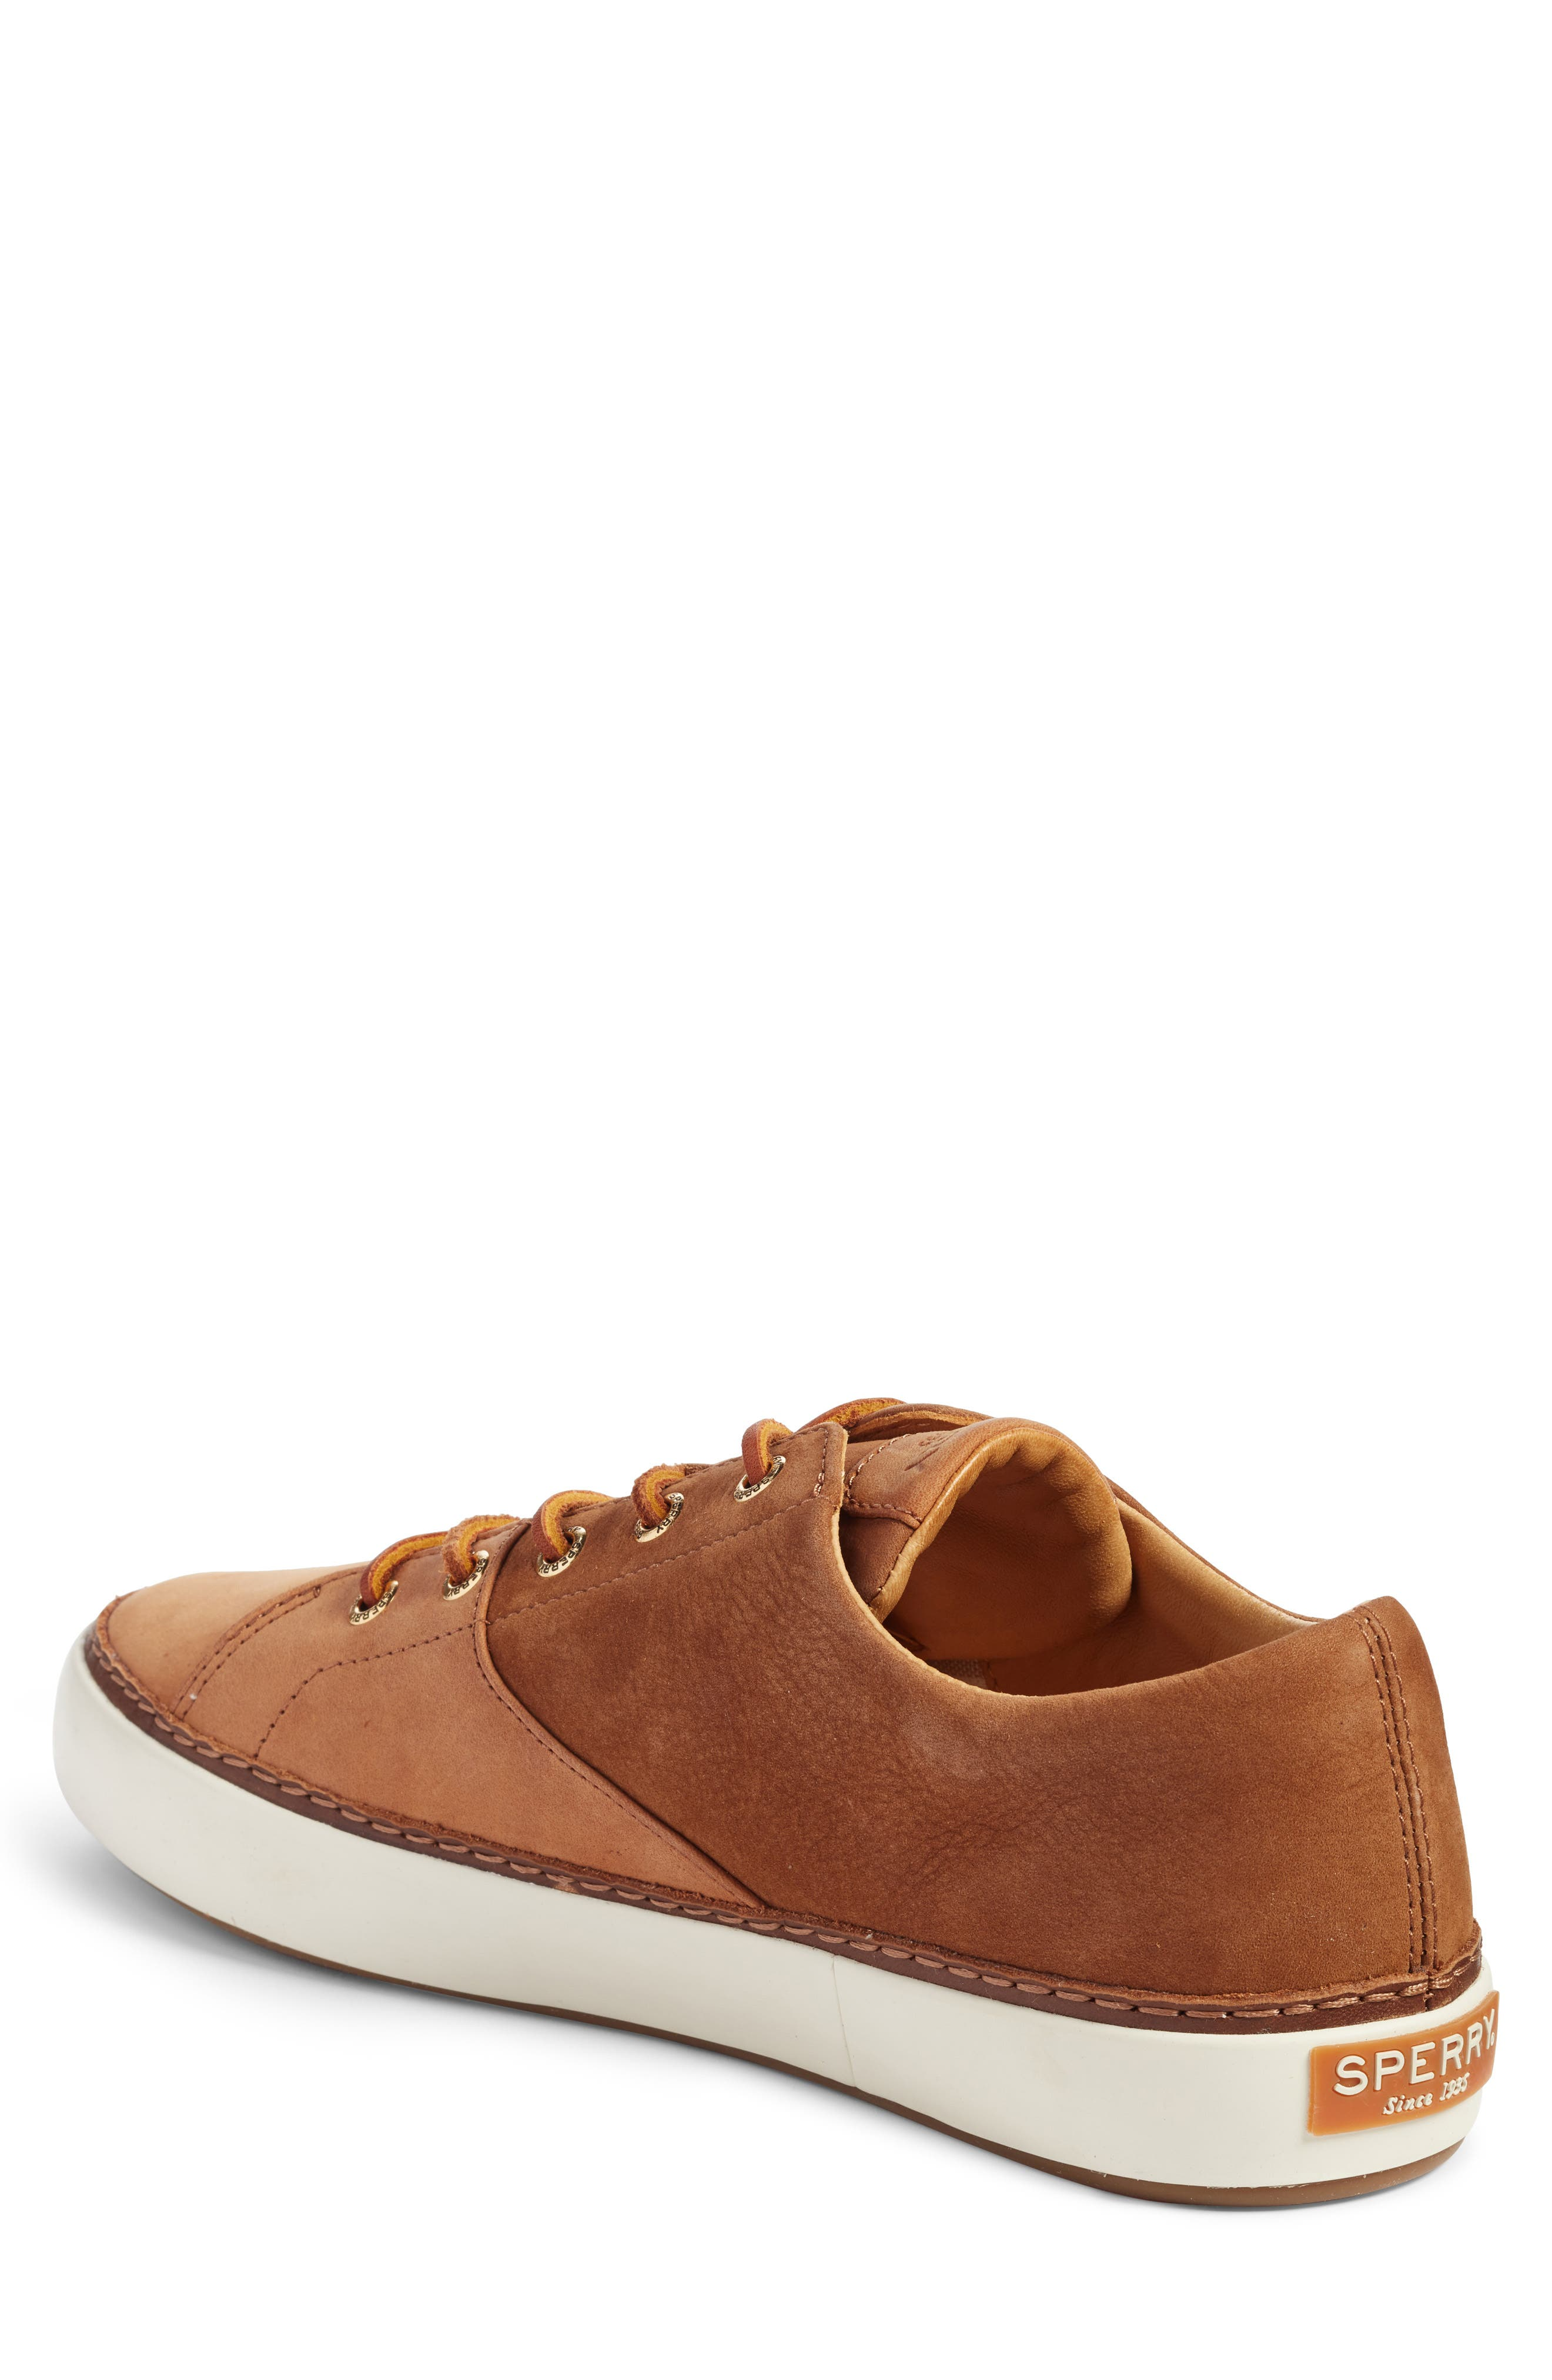 Gold Cup Haven Sneaker,                             Alternate thumbnail 2, color,                             TAN LEATHER